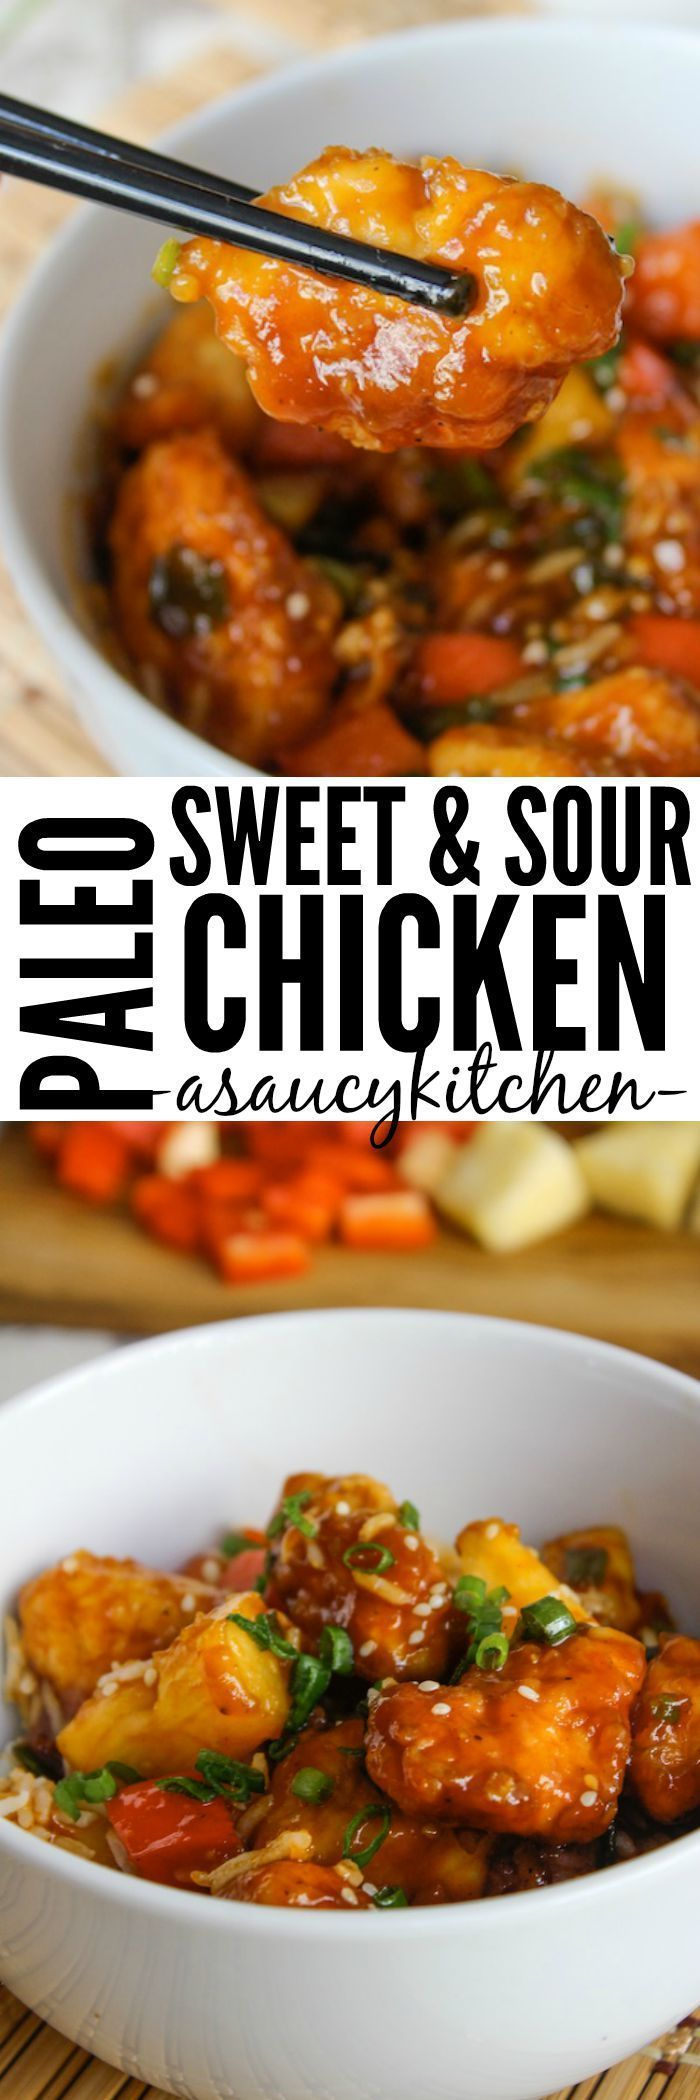 Paleo and low fodmap sweet and sour chicken http://www.asaucykitchen.com